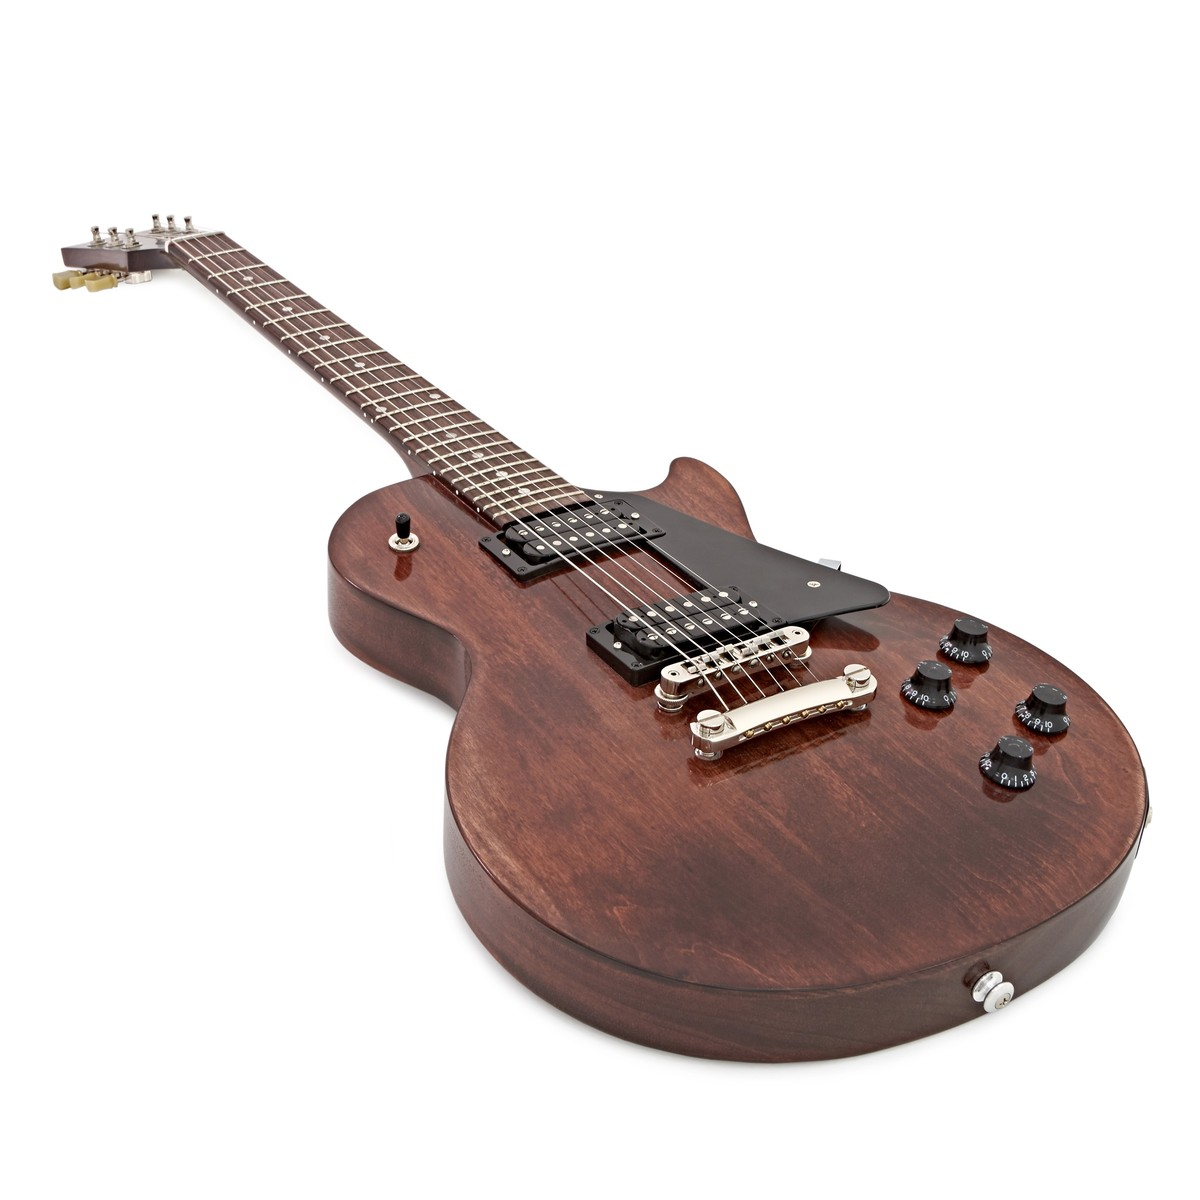 gibson les paul faded t electric guitar worn brown 2017 at. Black Bedroom Furniture Sets. Home Design Ideas